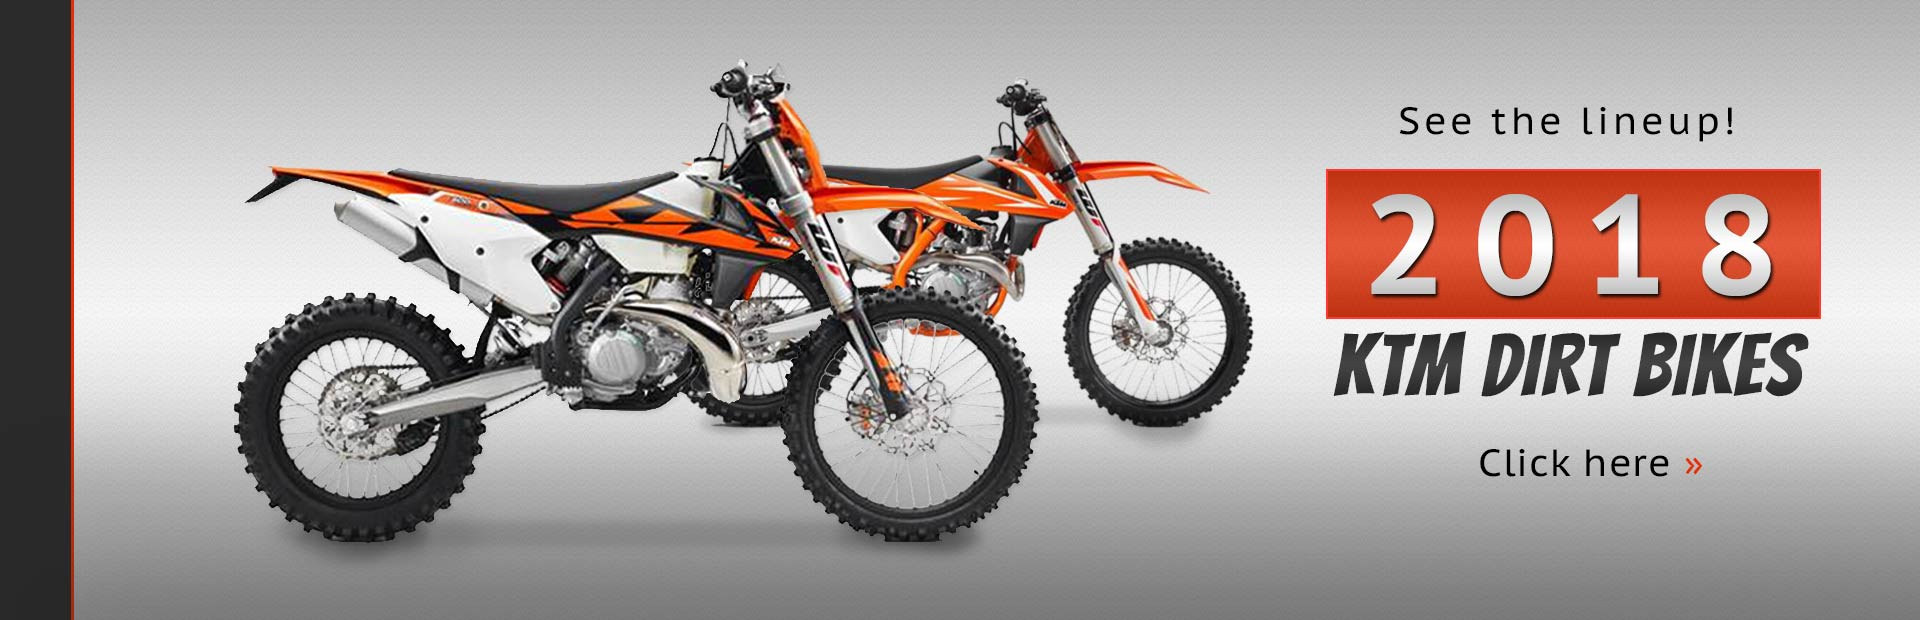 Click here to view the lineup of 2018 KTM dirt bikes!